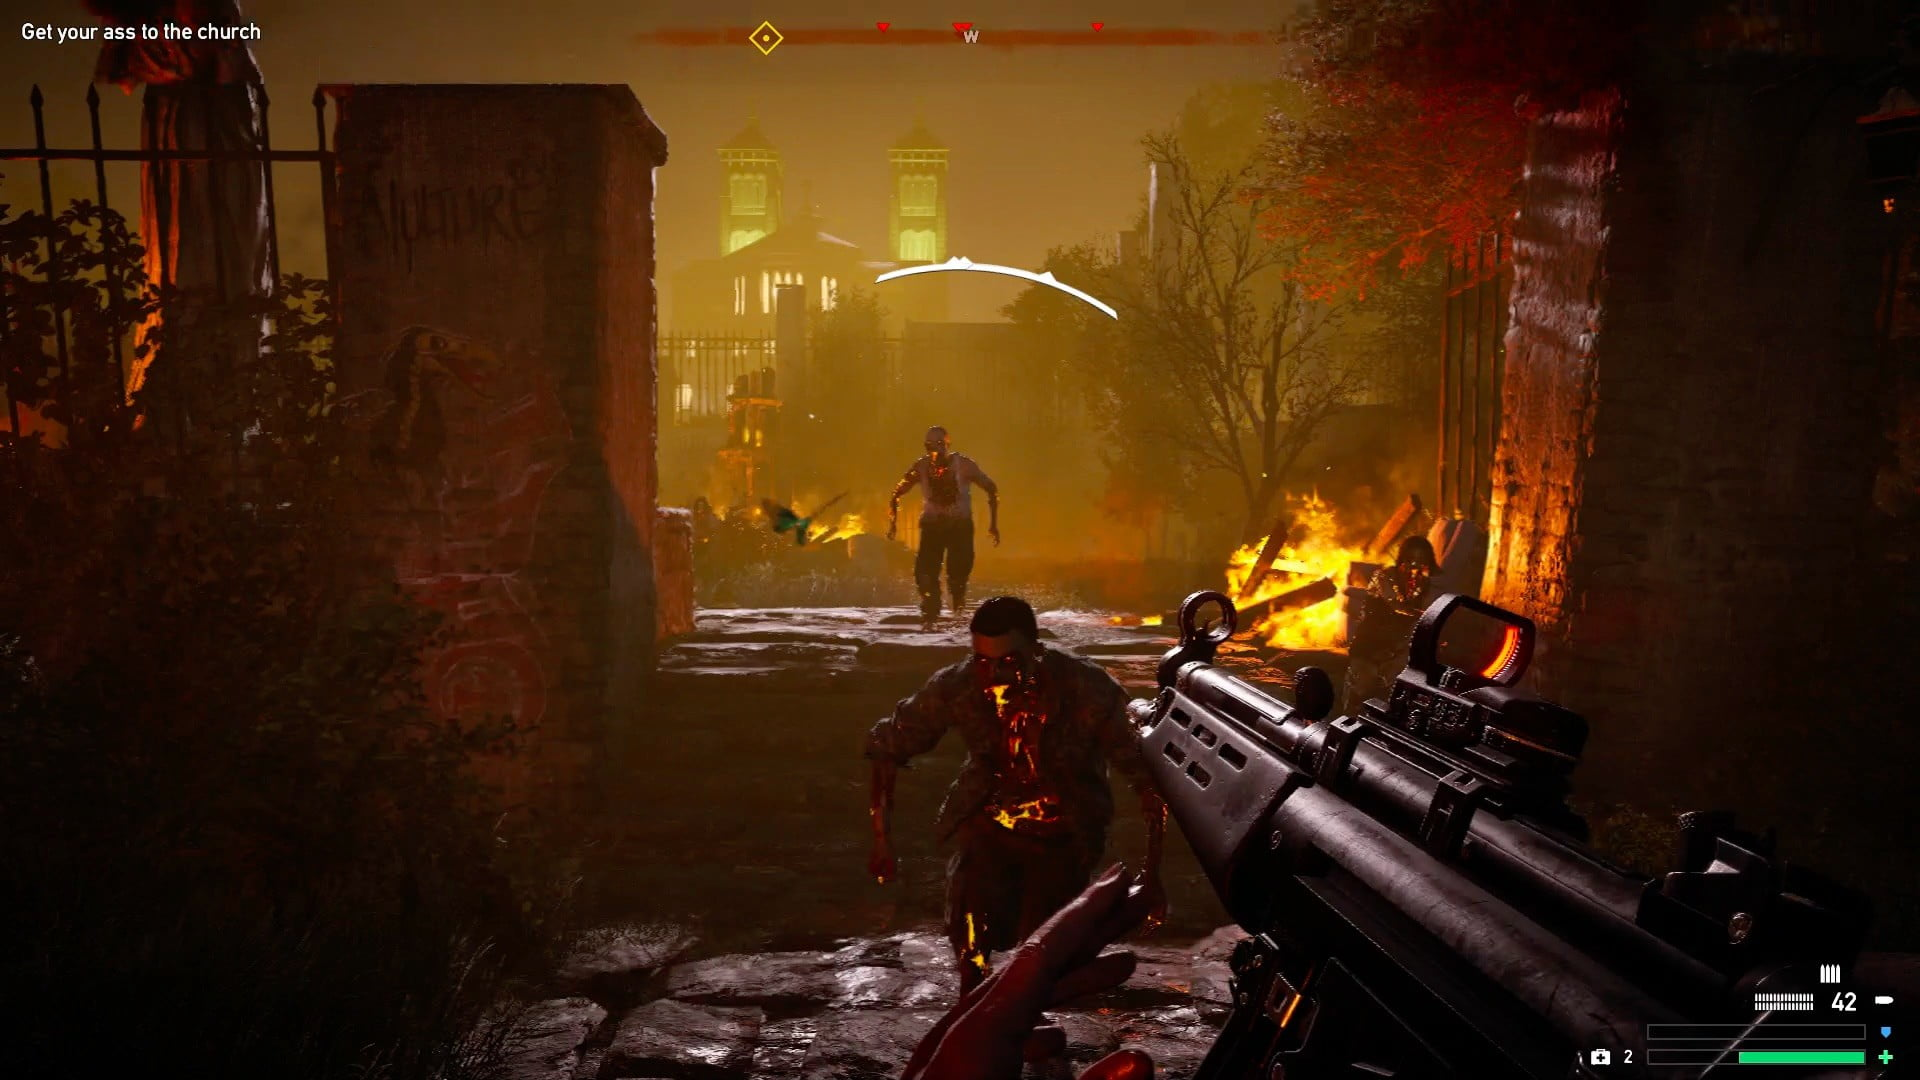 Far Cry 5: Dead Living Zombies' Is Hilariously Forward About its